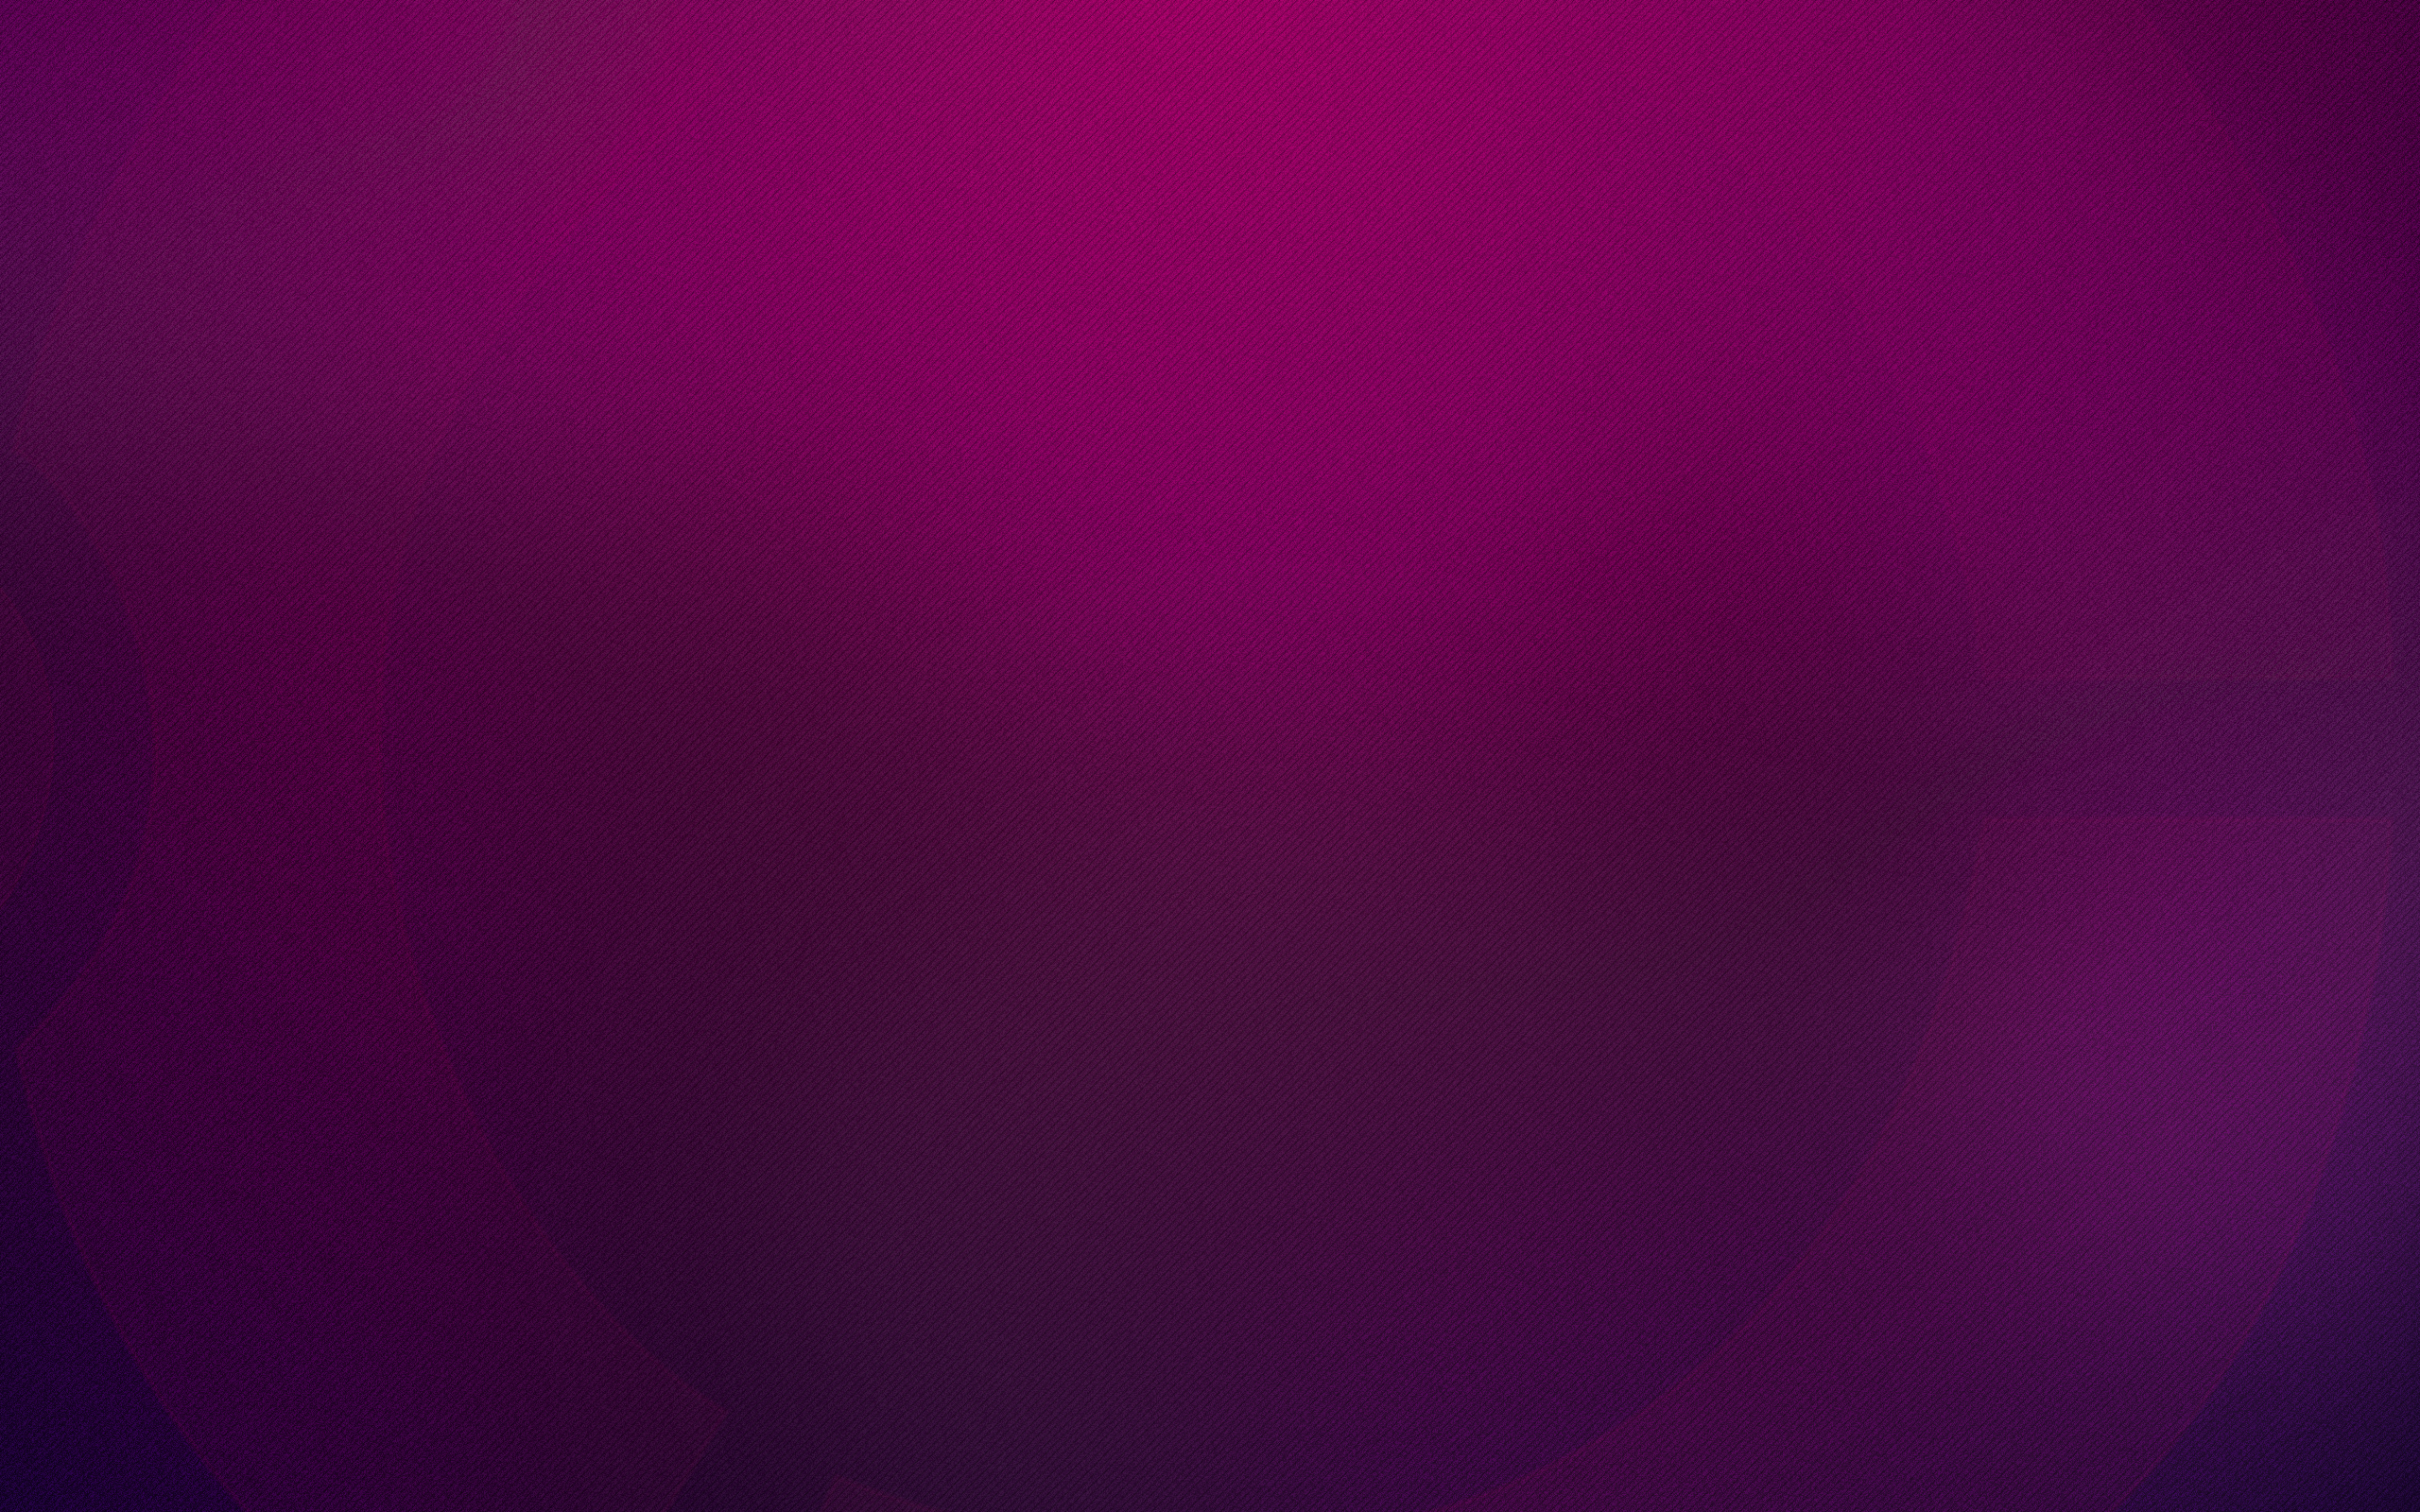 Magenta color wallpapers and images   wallpapers pictures 2560x1600